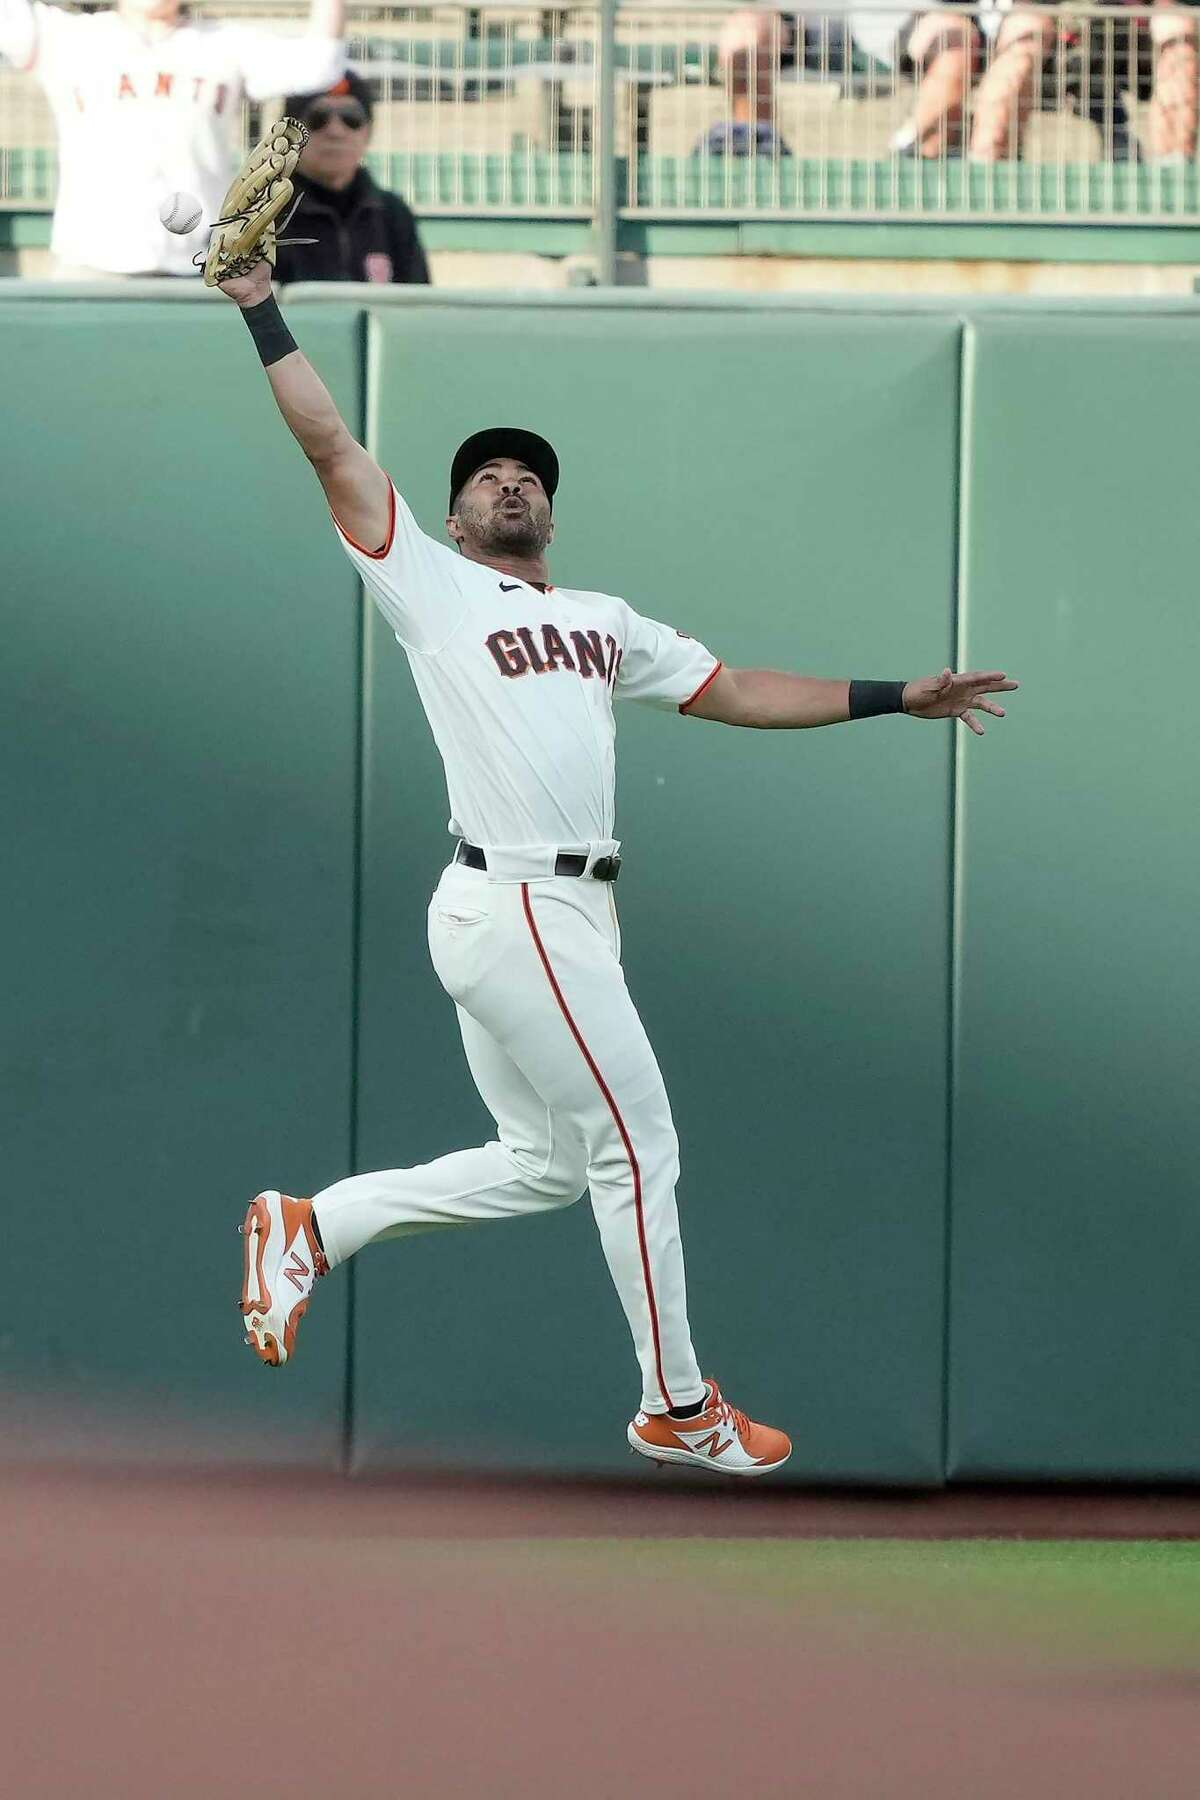 San Francisco Giants left fielder LaMonte Wade Jr. cannot make the catch on a double by Arizona Diamondbacks' Josh Rojas during the first inning of a baseball game Wednesday, June 16, 2021, in San Francisco. (AP Photo/Tony Avelar)